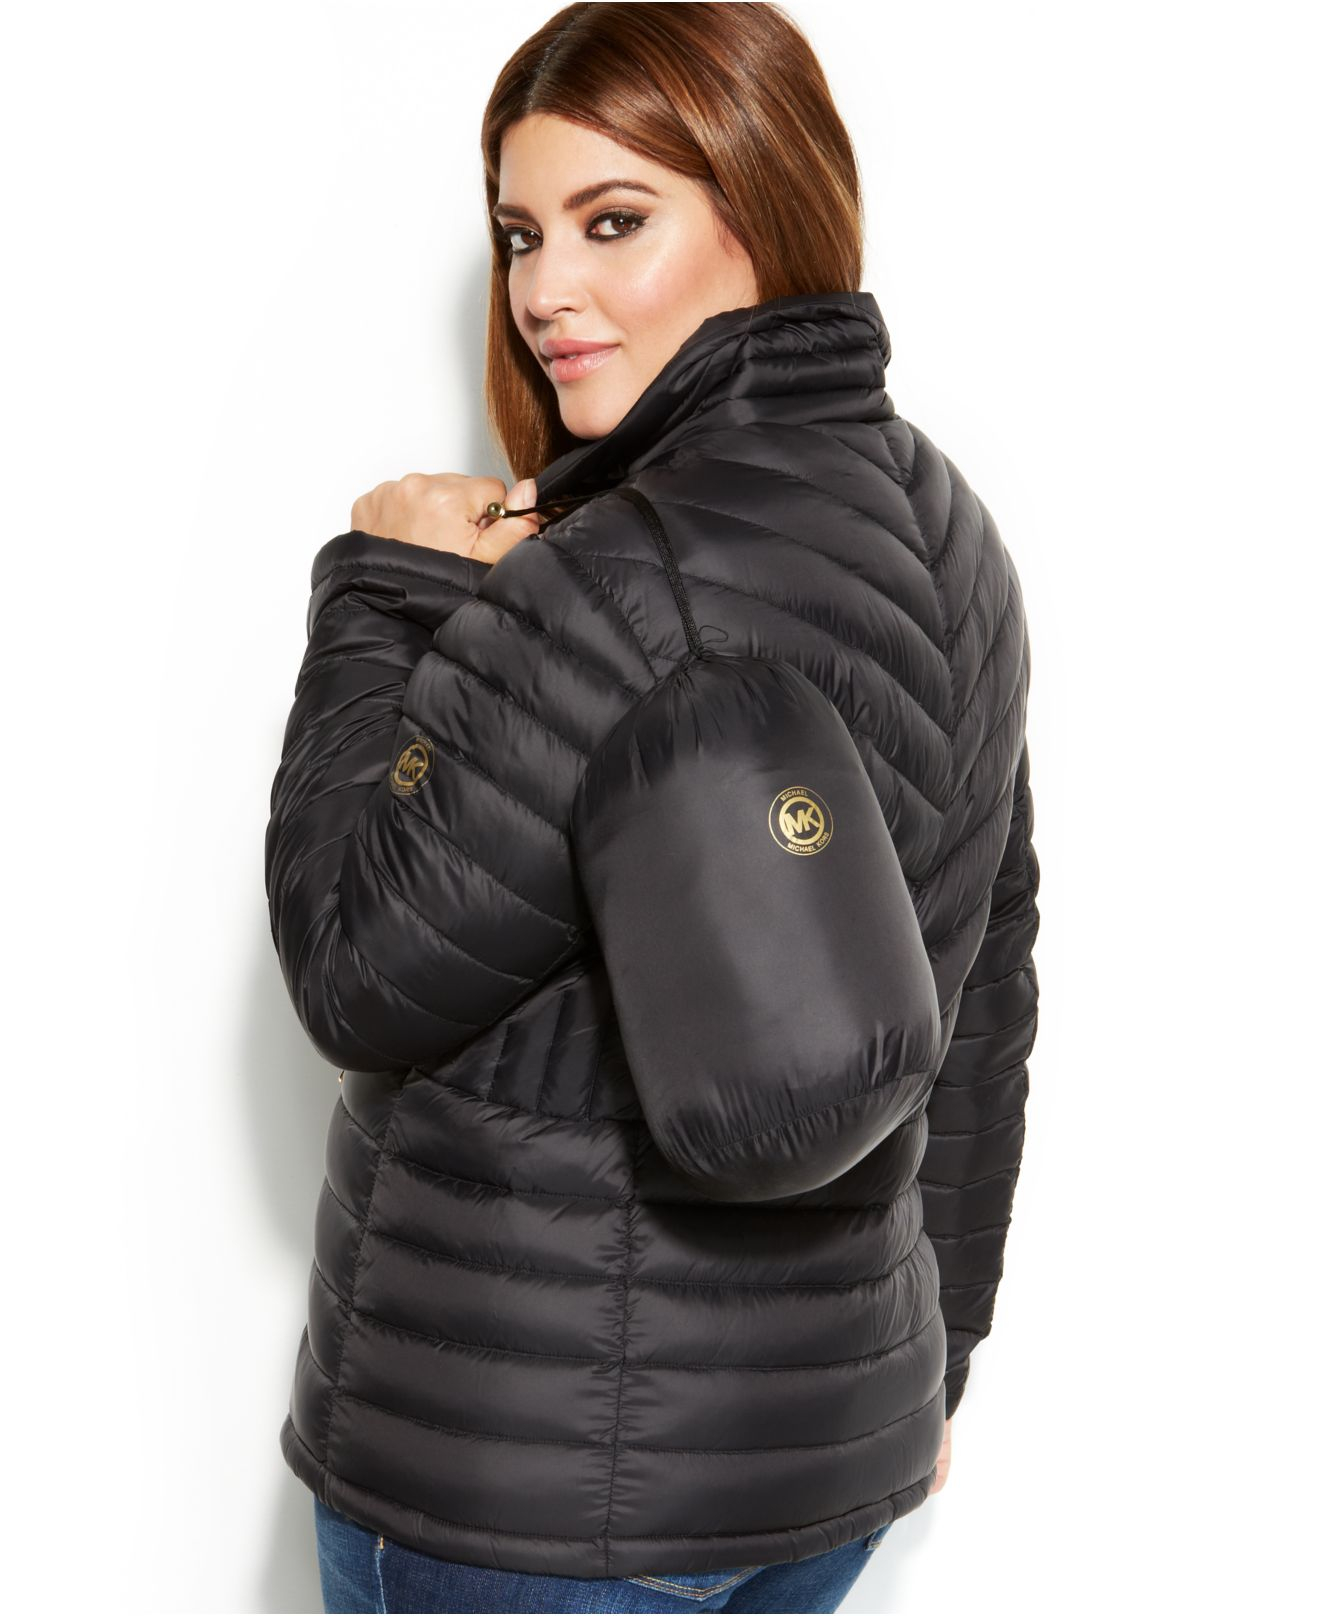 f3b3ce3cac9 Lyst - Michael Kors Michael Plus Size Packable Quilted Down Puffer ...